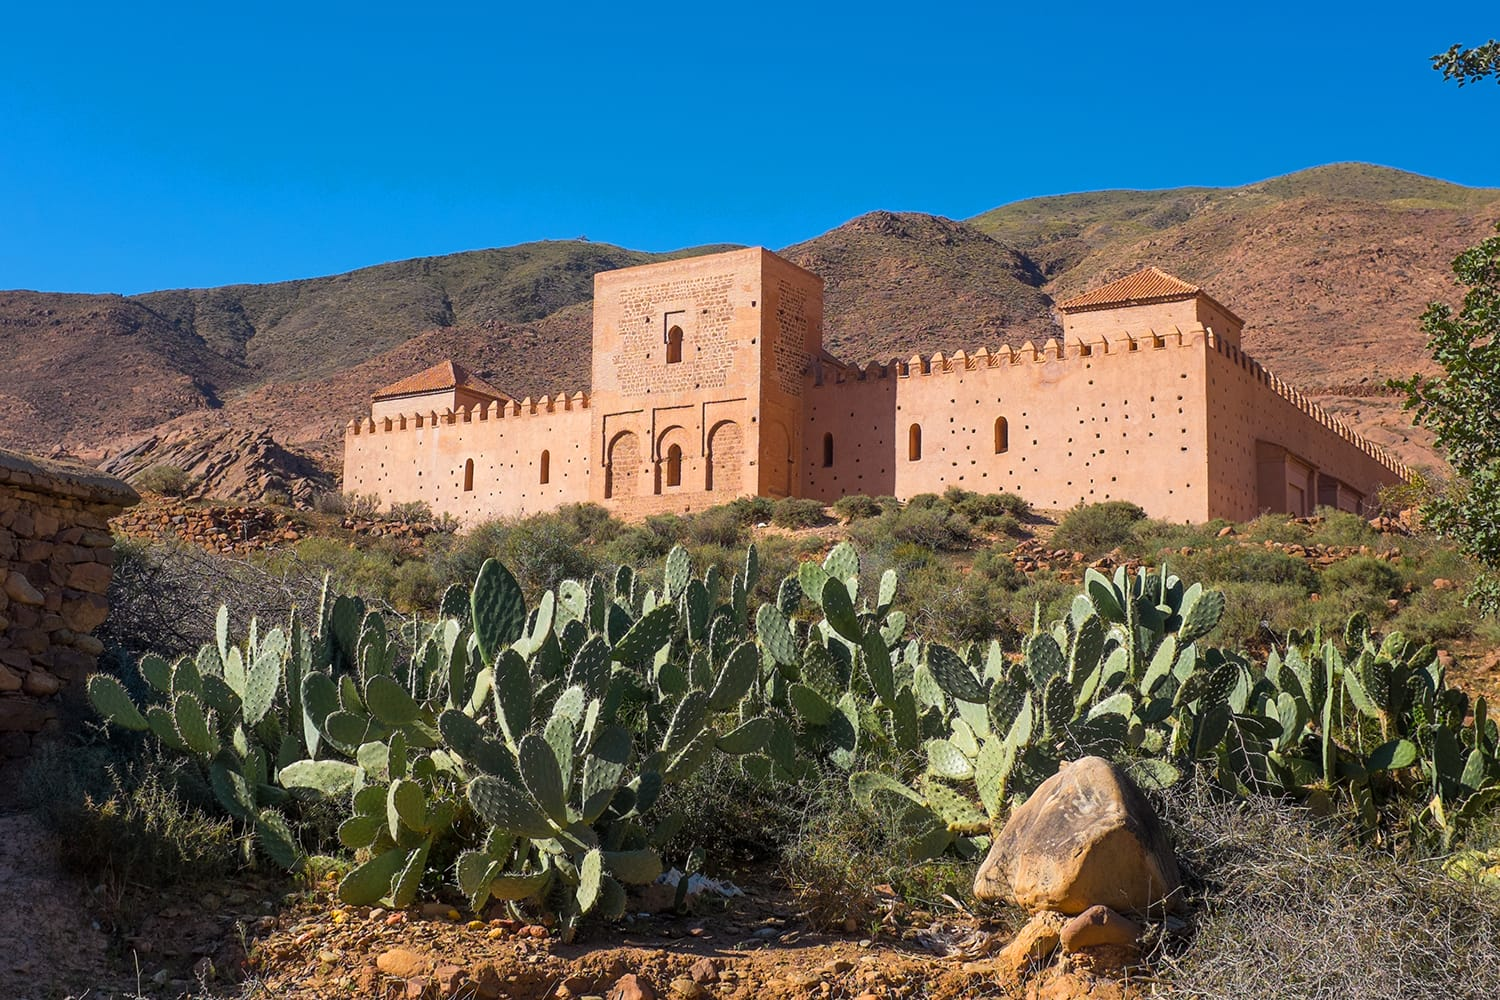 View at Hill with Old Almohad Tin Mal Mosque in Morocco